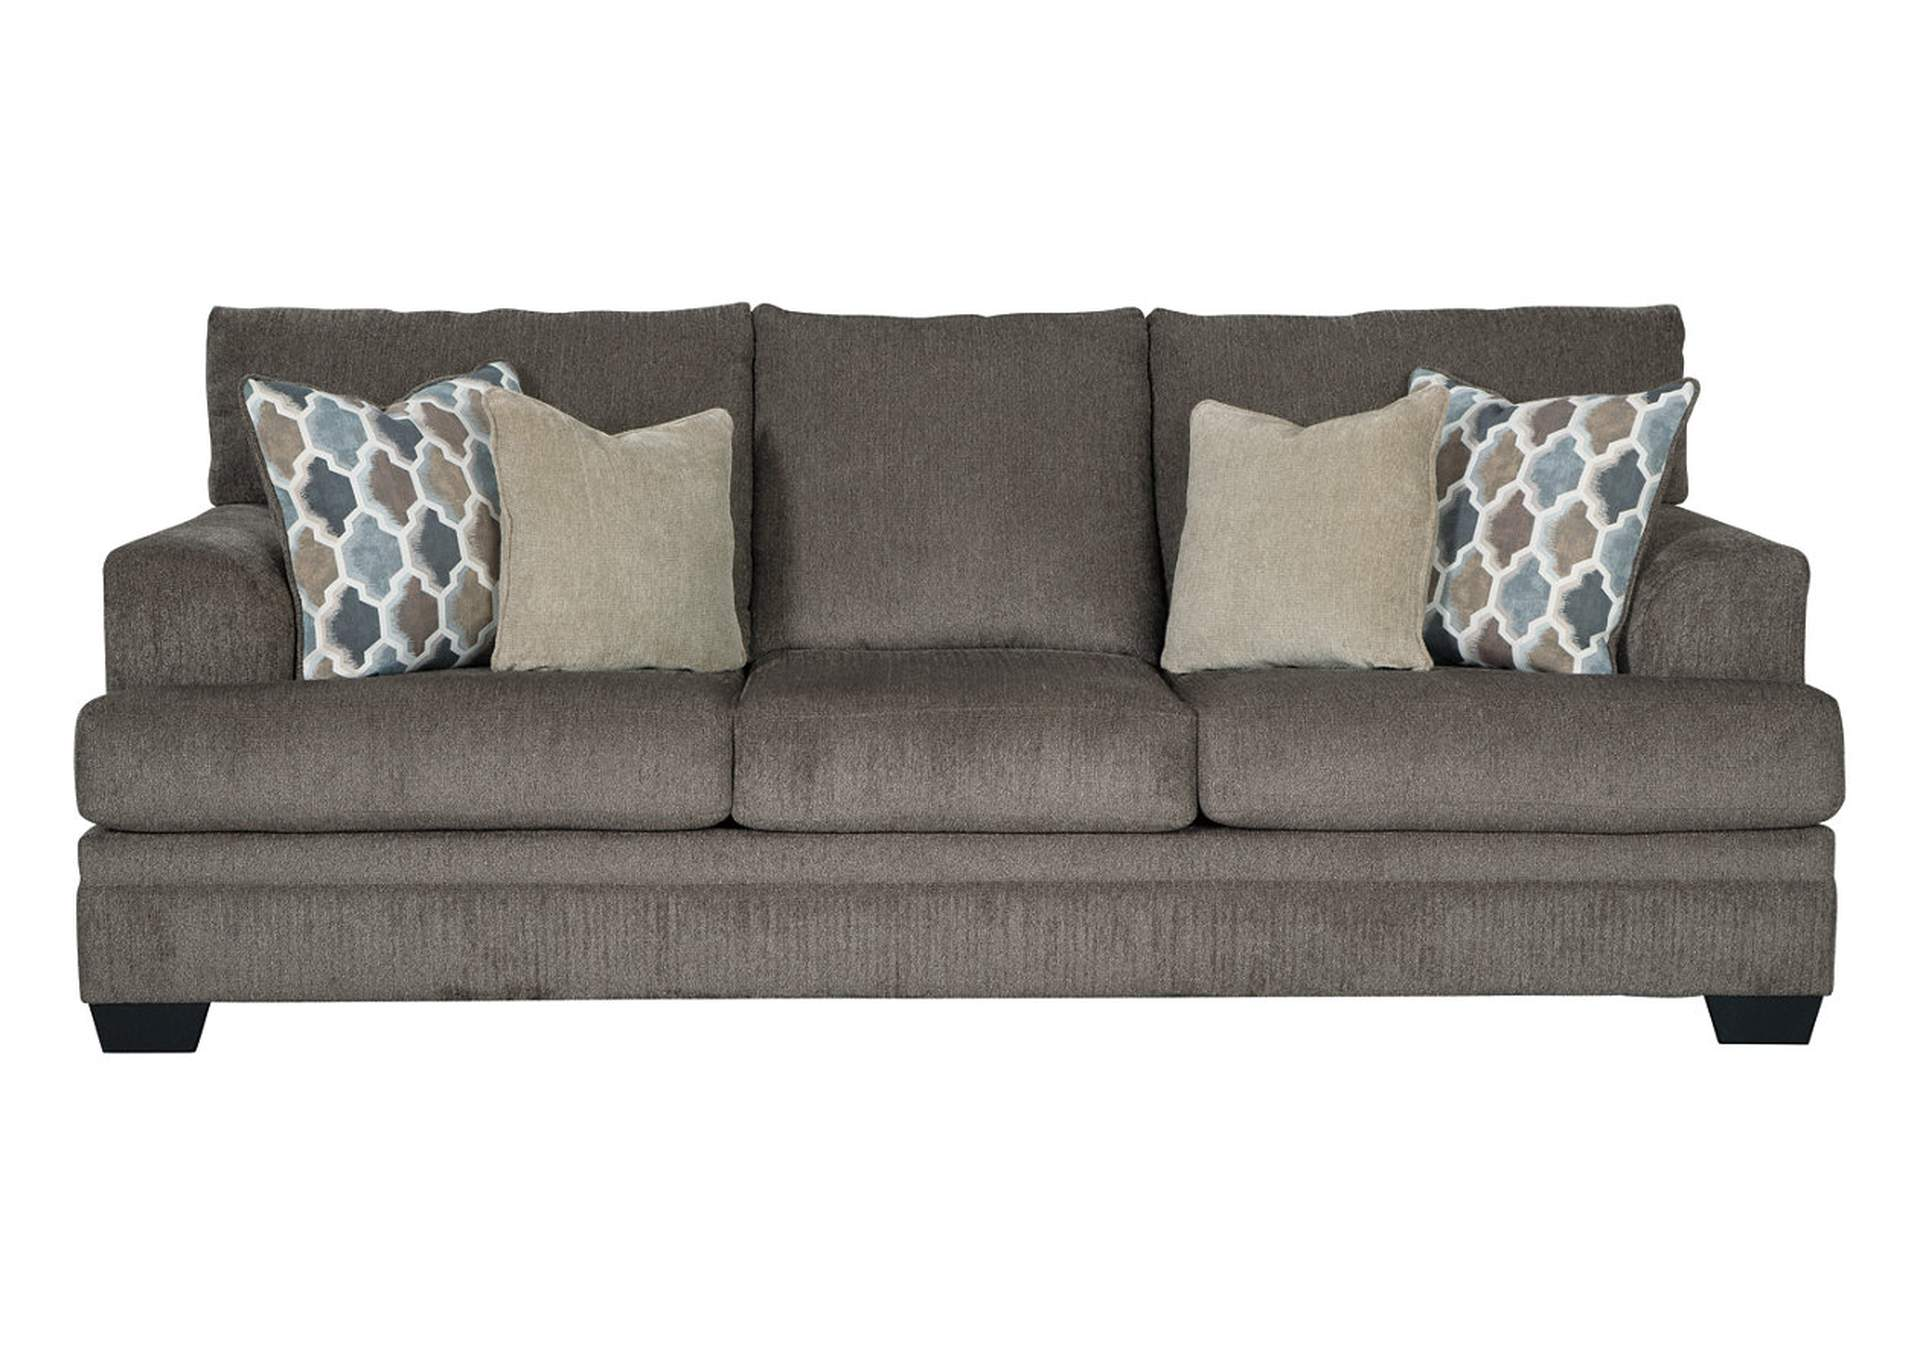 Dorsten Slate Sofa & Loveseat,Signature Design By Ashley